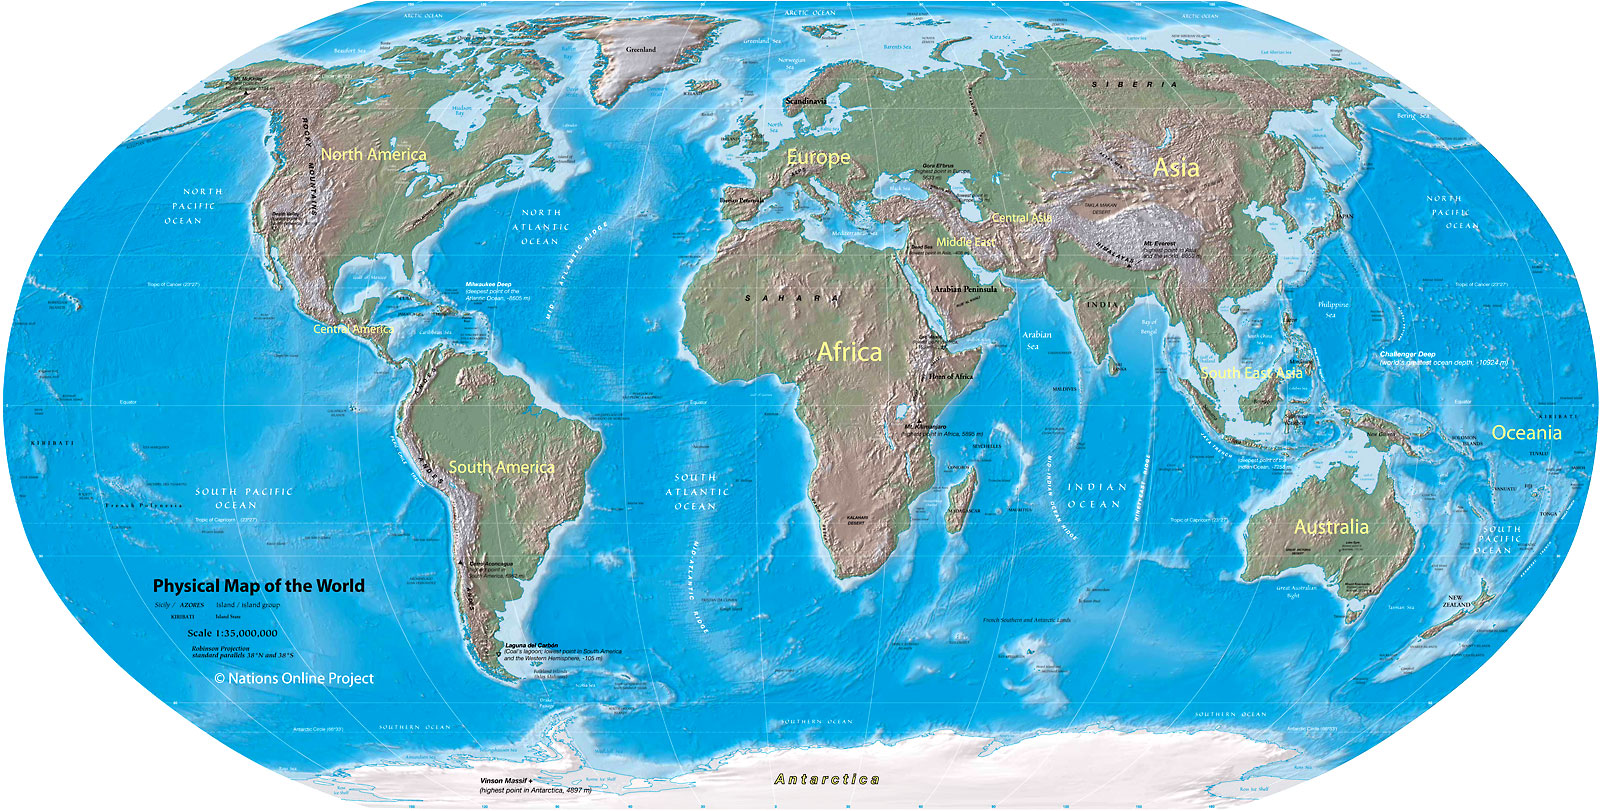 World map physical map of the world nations online project physical map of the world 1600px gumiabroncs Gallery